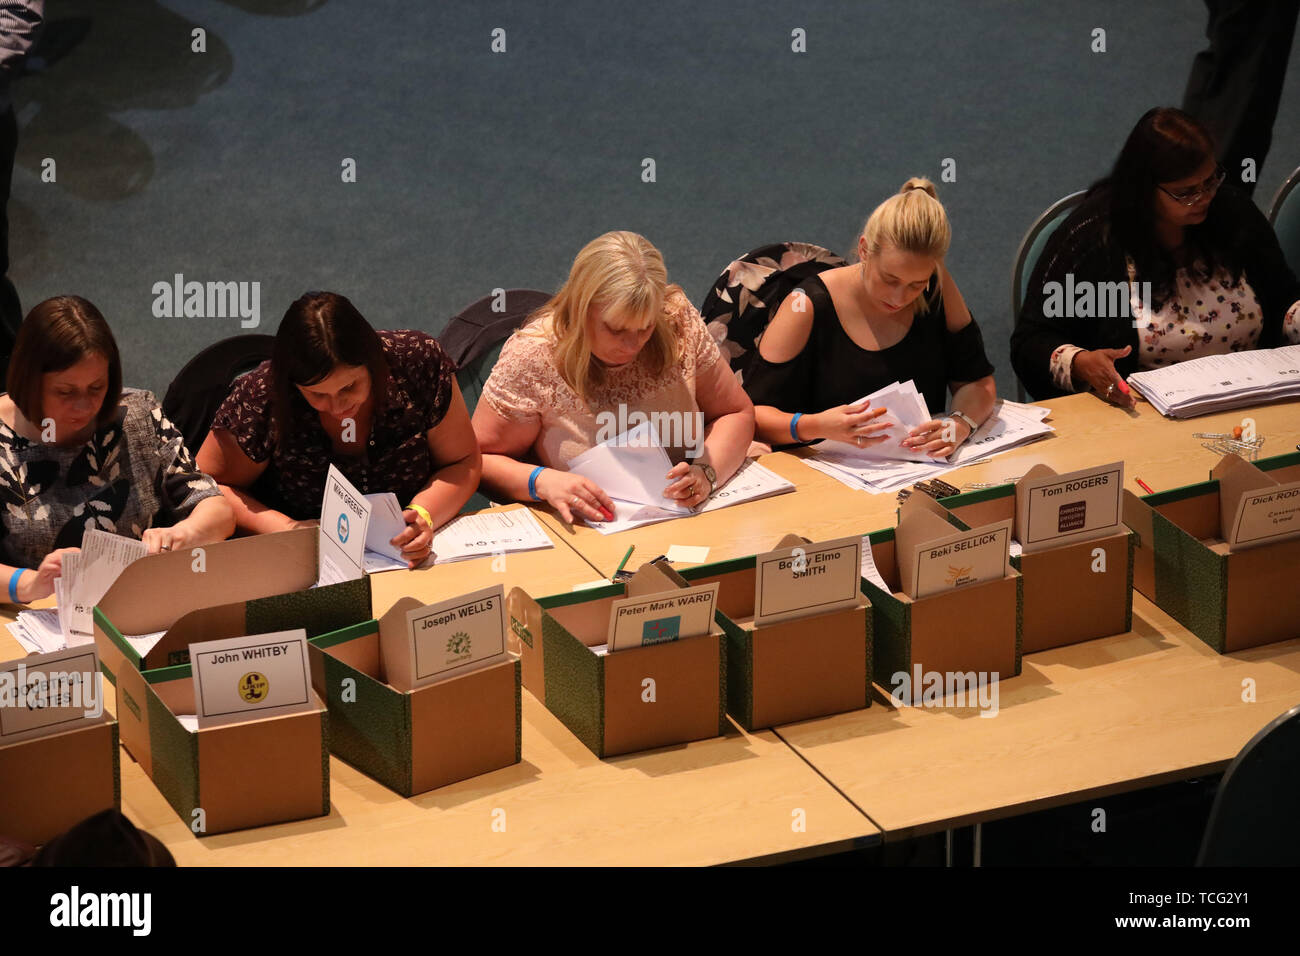 Peterborough, UK. 07th June, 2019. Votes are counted before Lisa Forbes (Labour Party Candidate) became the  new Member of Parliament for Peterborough, beating Mike Greene (Brexit Party candidate) into second place and Paul Bristow (Conservative Party candidate) was third. The by-election was held in Peterborough today after disgraced MP Fiona Onasanya was removed from her post as Peterborough MP when over 19,000 signed a recall petition, following her court appearance over a speeding ticket, and her spell in jail. Peterborough by-election, Peterborough, Cambridgeshire, UK on June 7, 2019. Cre - Stock Image